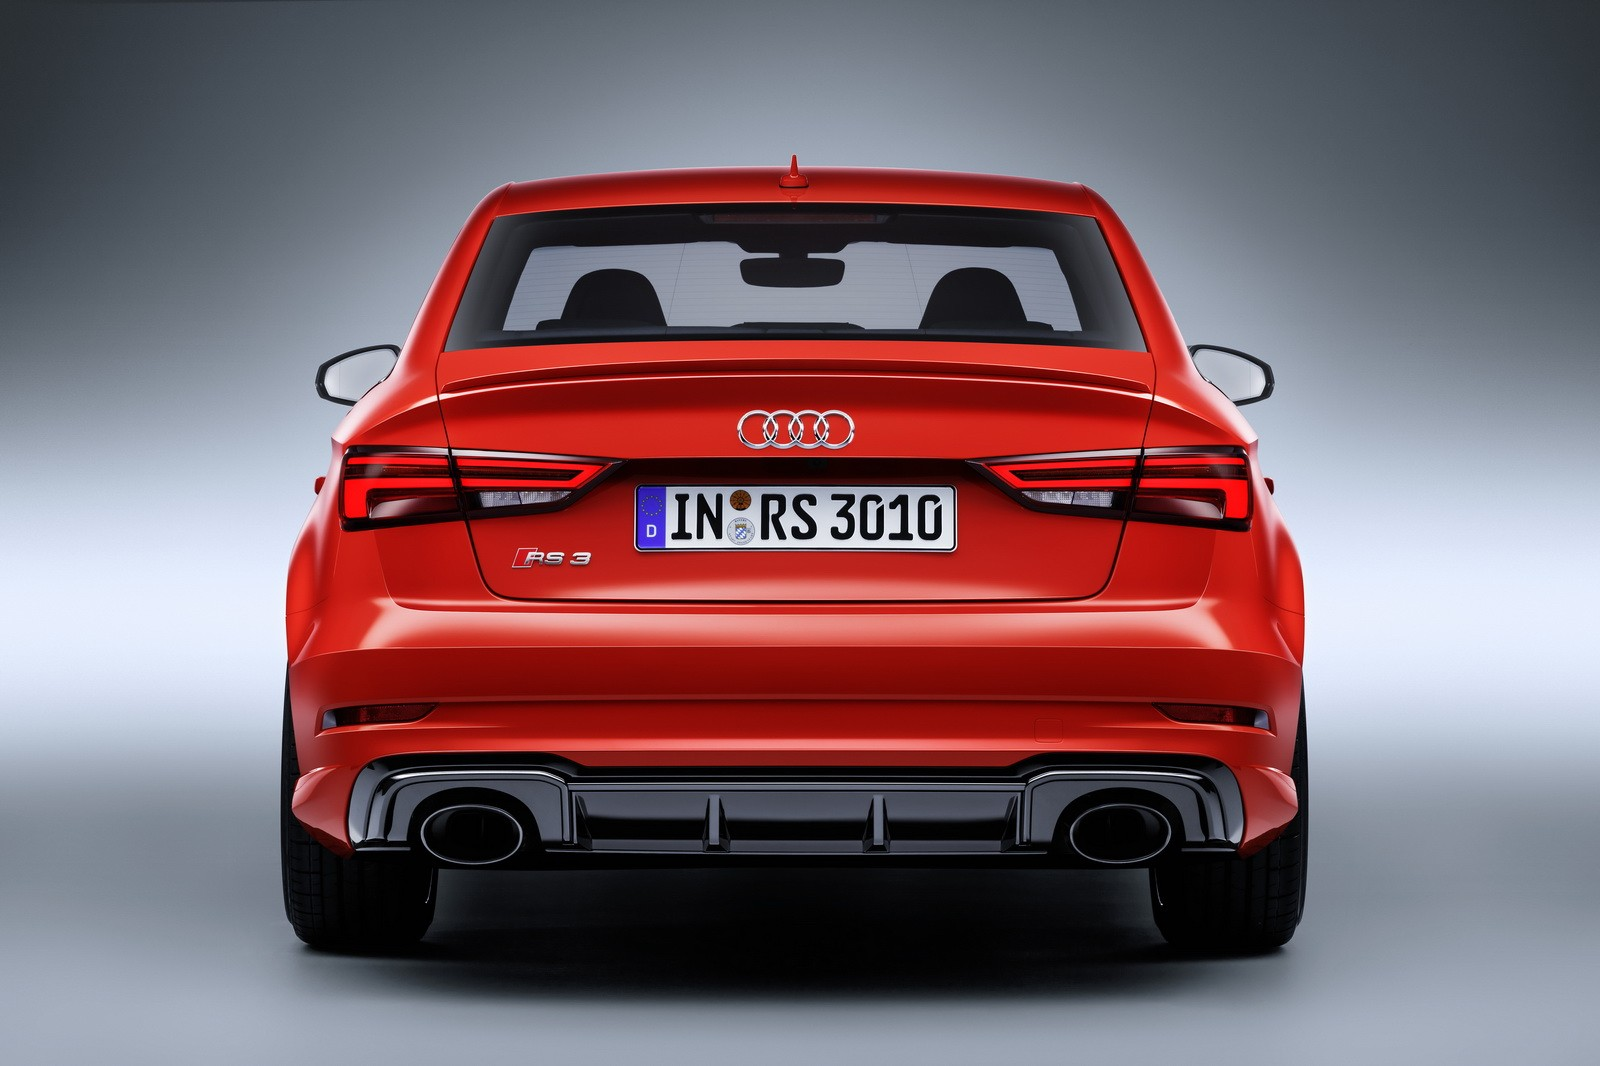 2017 Audi RS3 Sedan Finally Revealed and It's the Best Small RS Ever - autoevolution